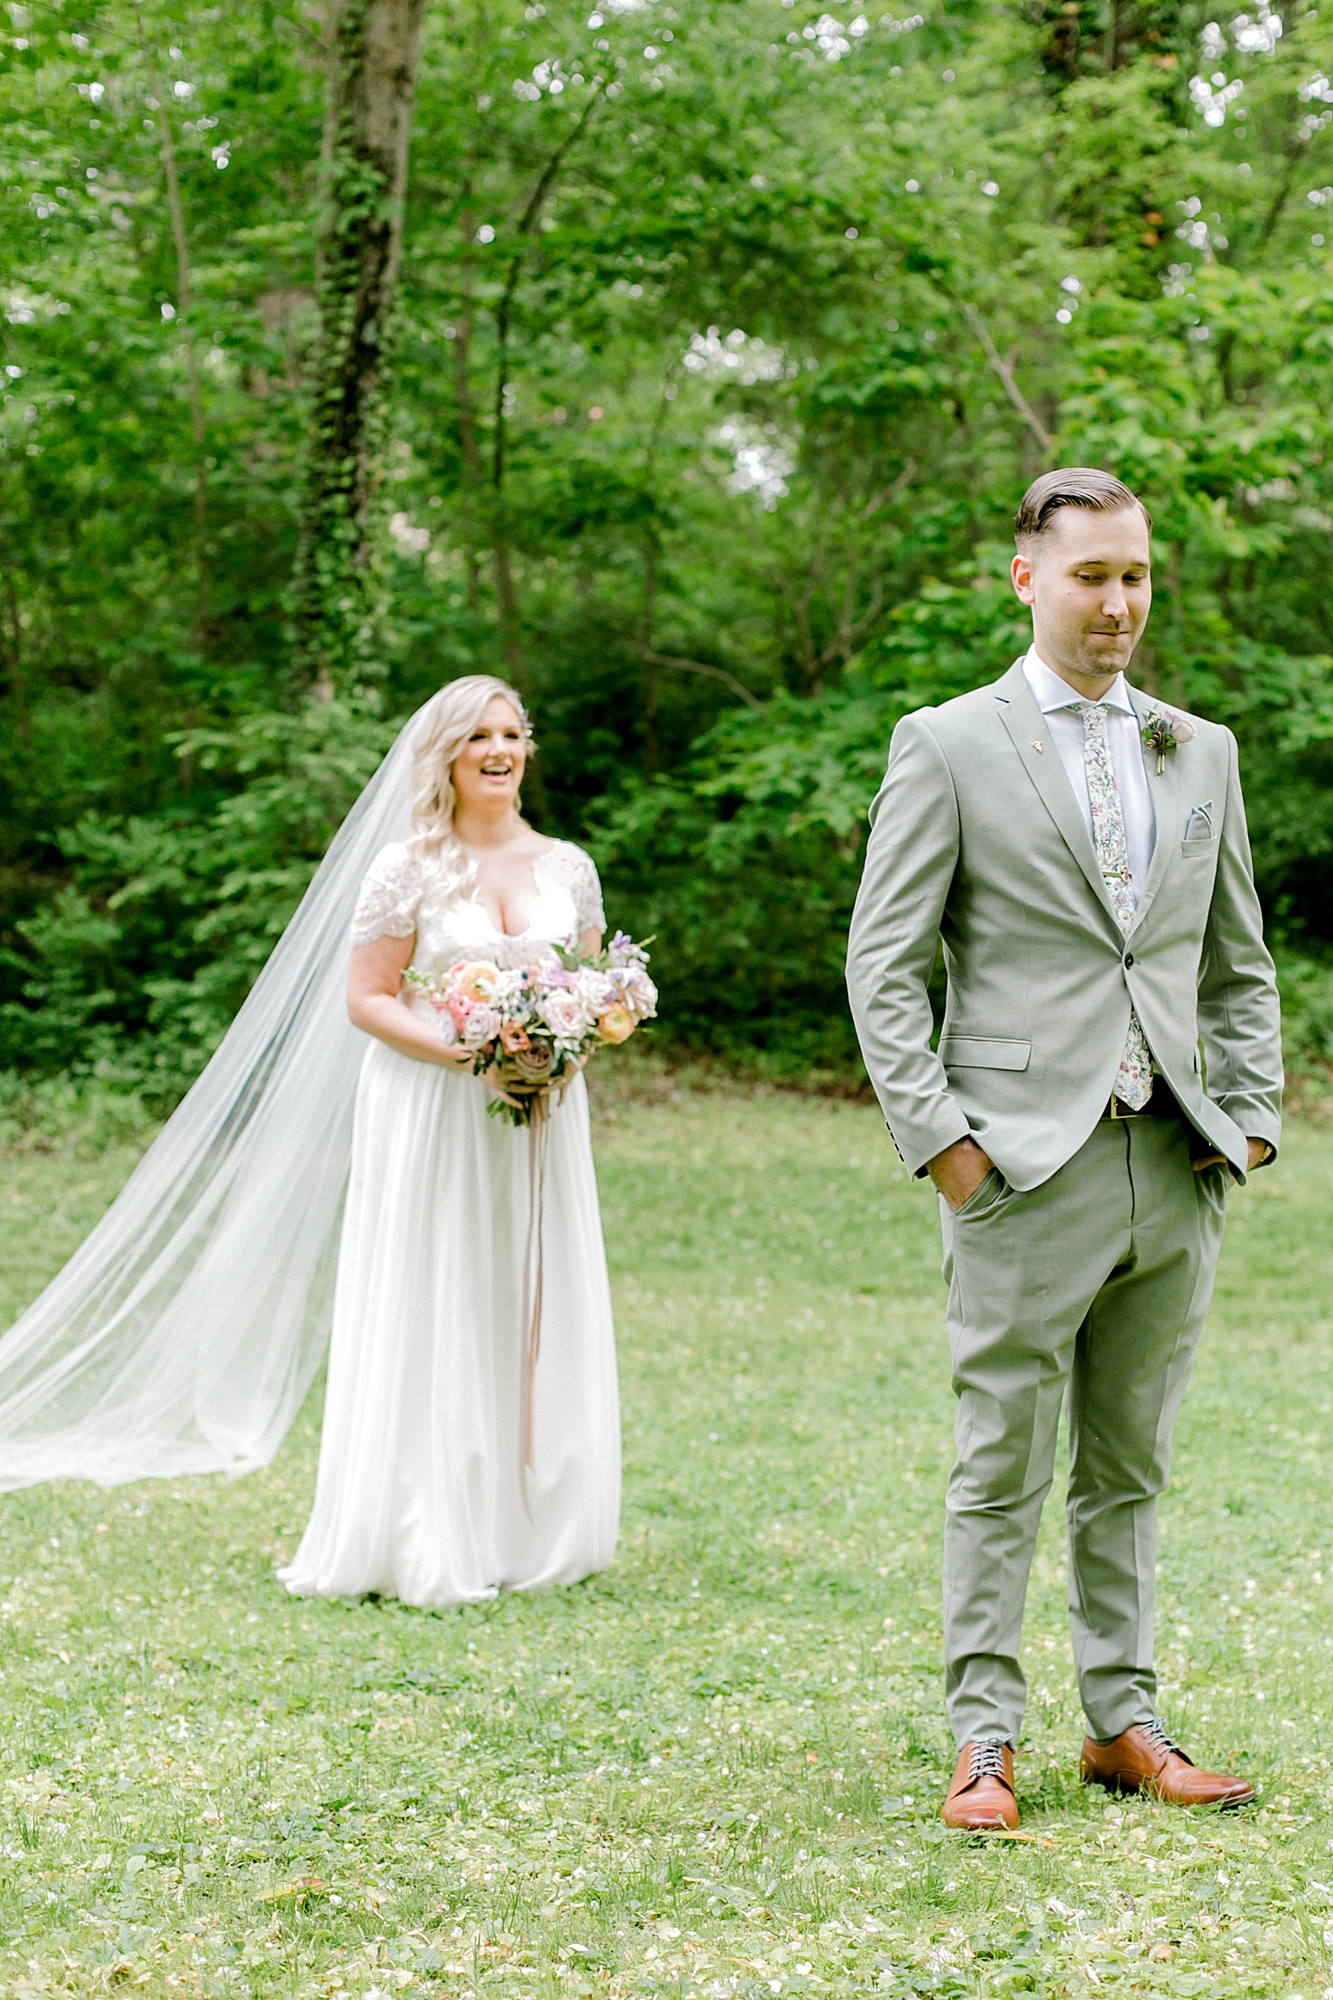 Intimate and Sweet Estate Wedding Photography by Magdalena Studios 0015